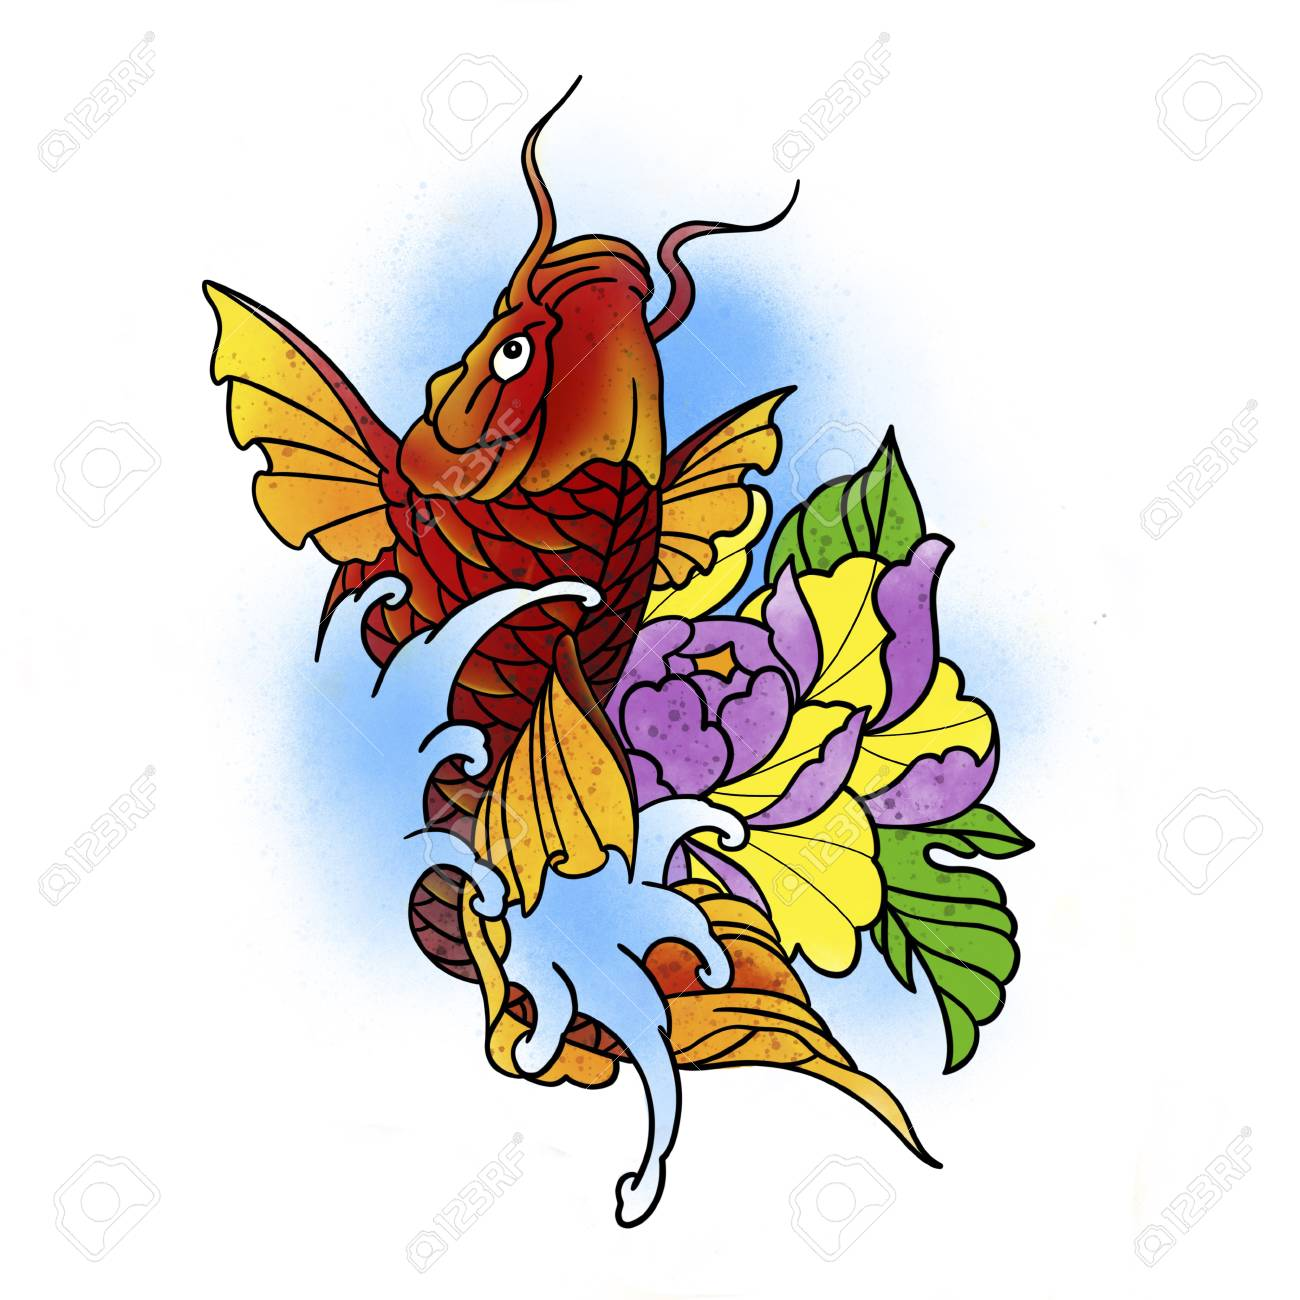 Stylized fish and flower. Tattoo design. Cartoon illustration, hand drawn style. Banque d'images - 87698975